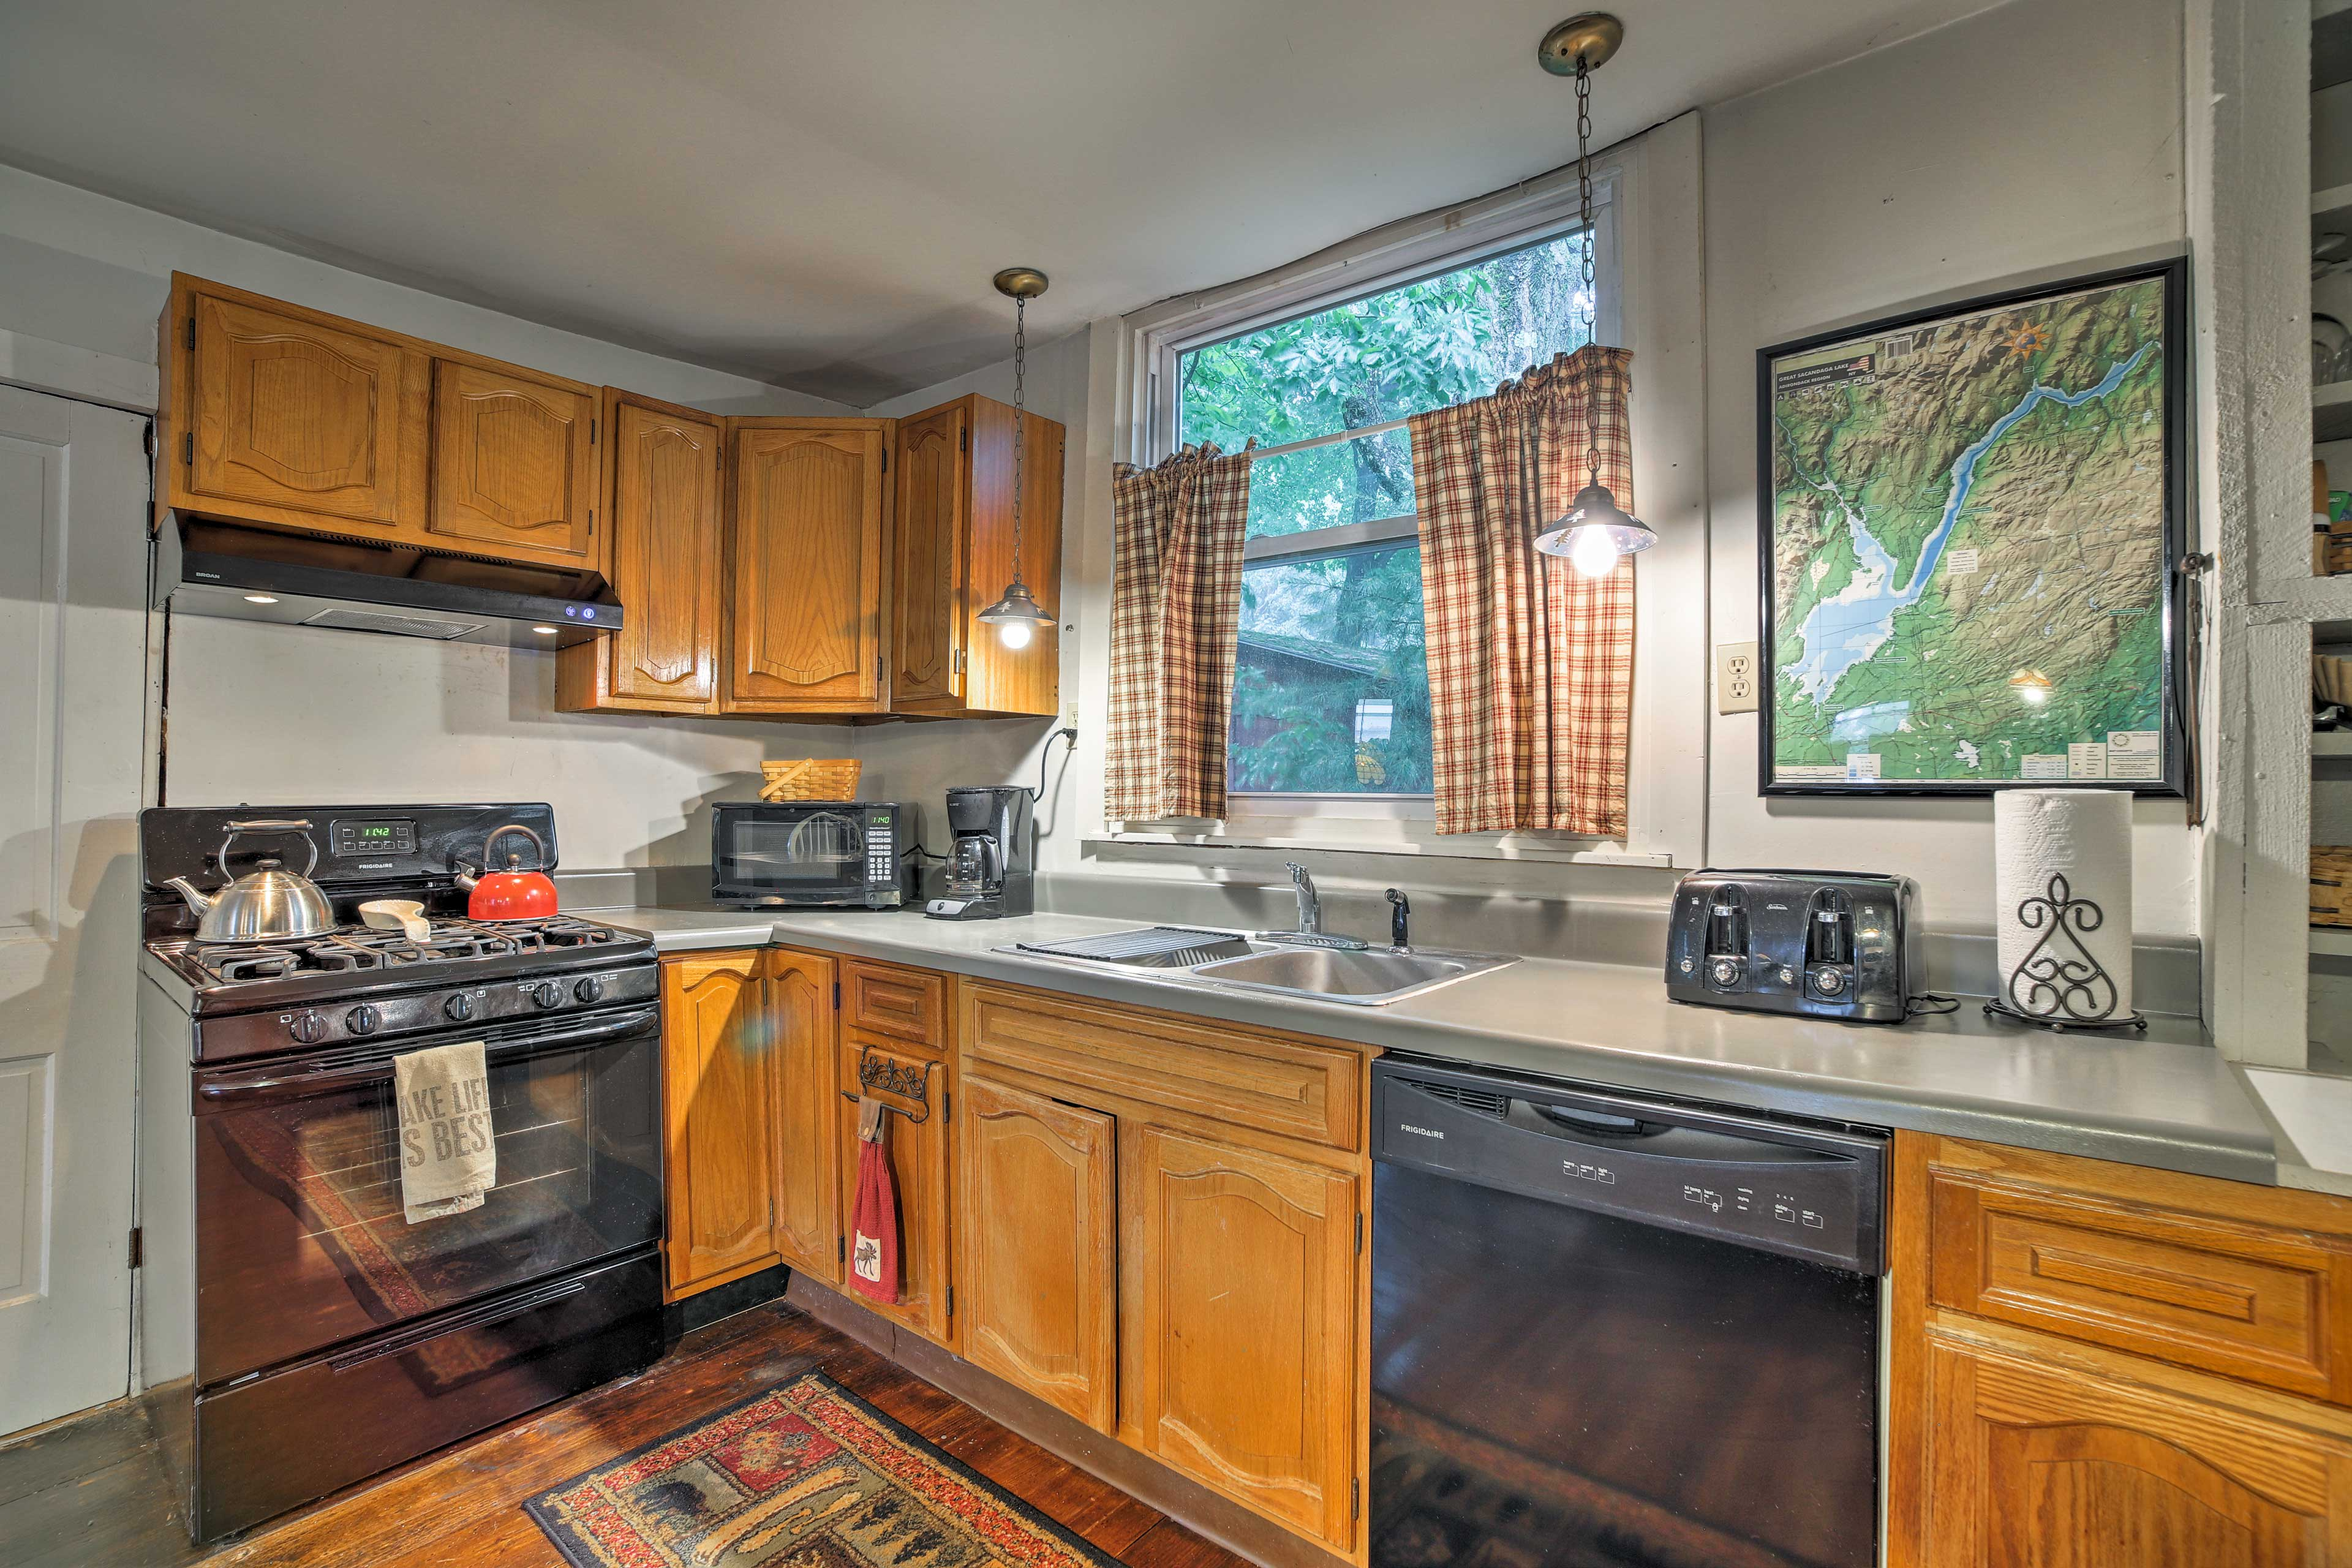 Whip up all of your favorite meals in the fully equipped kitchen.